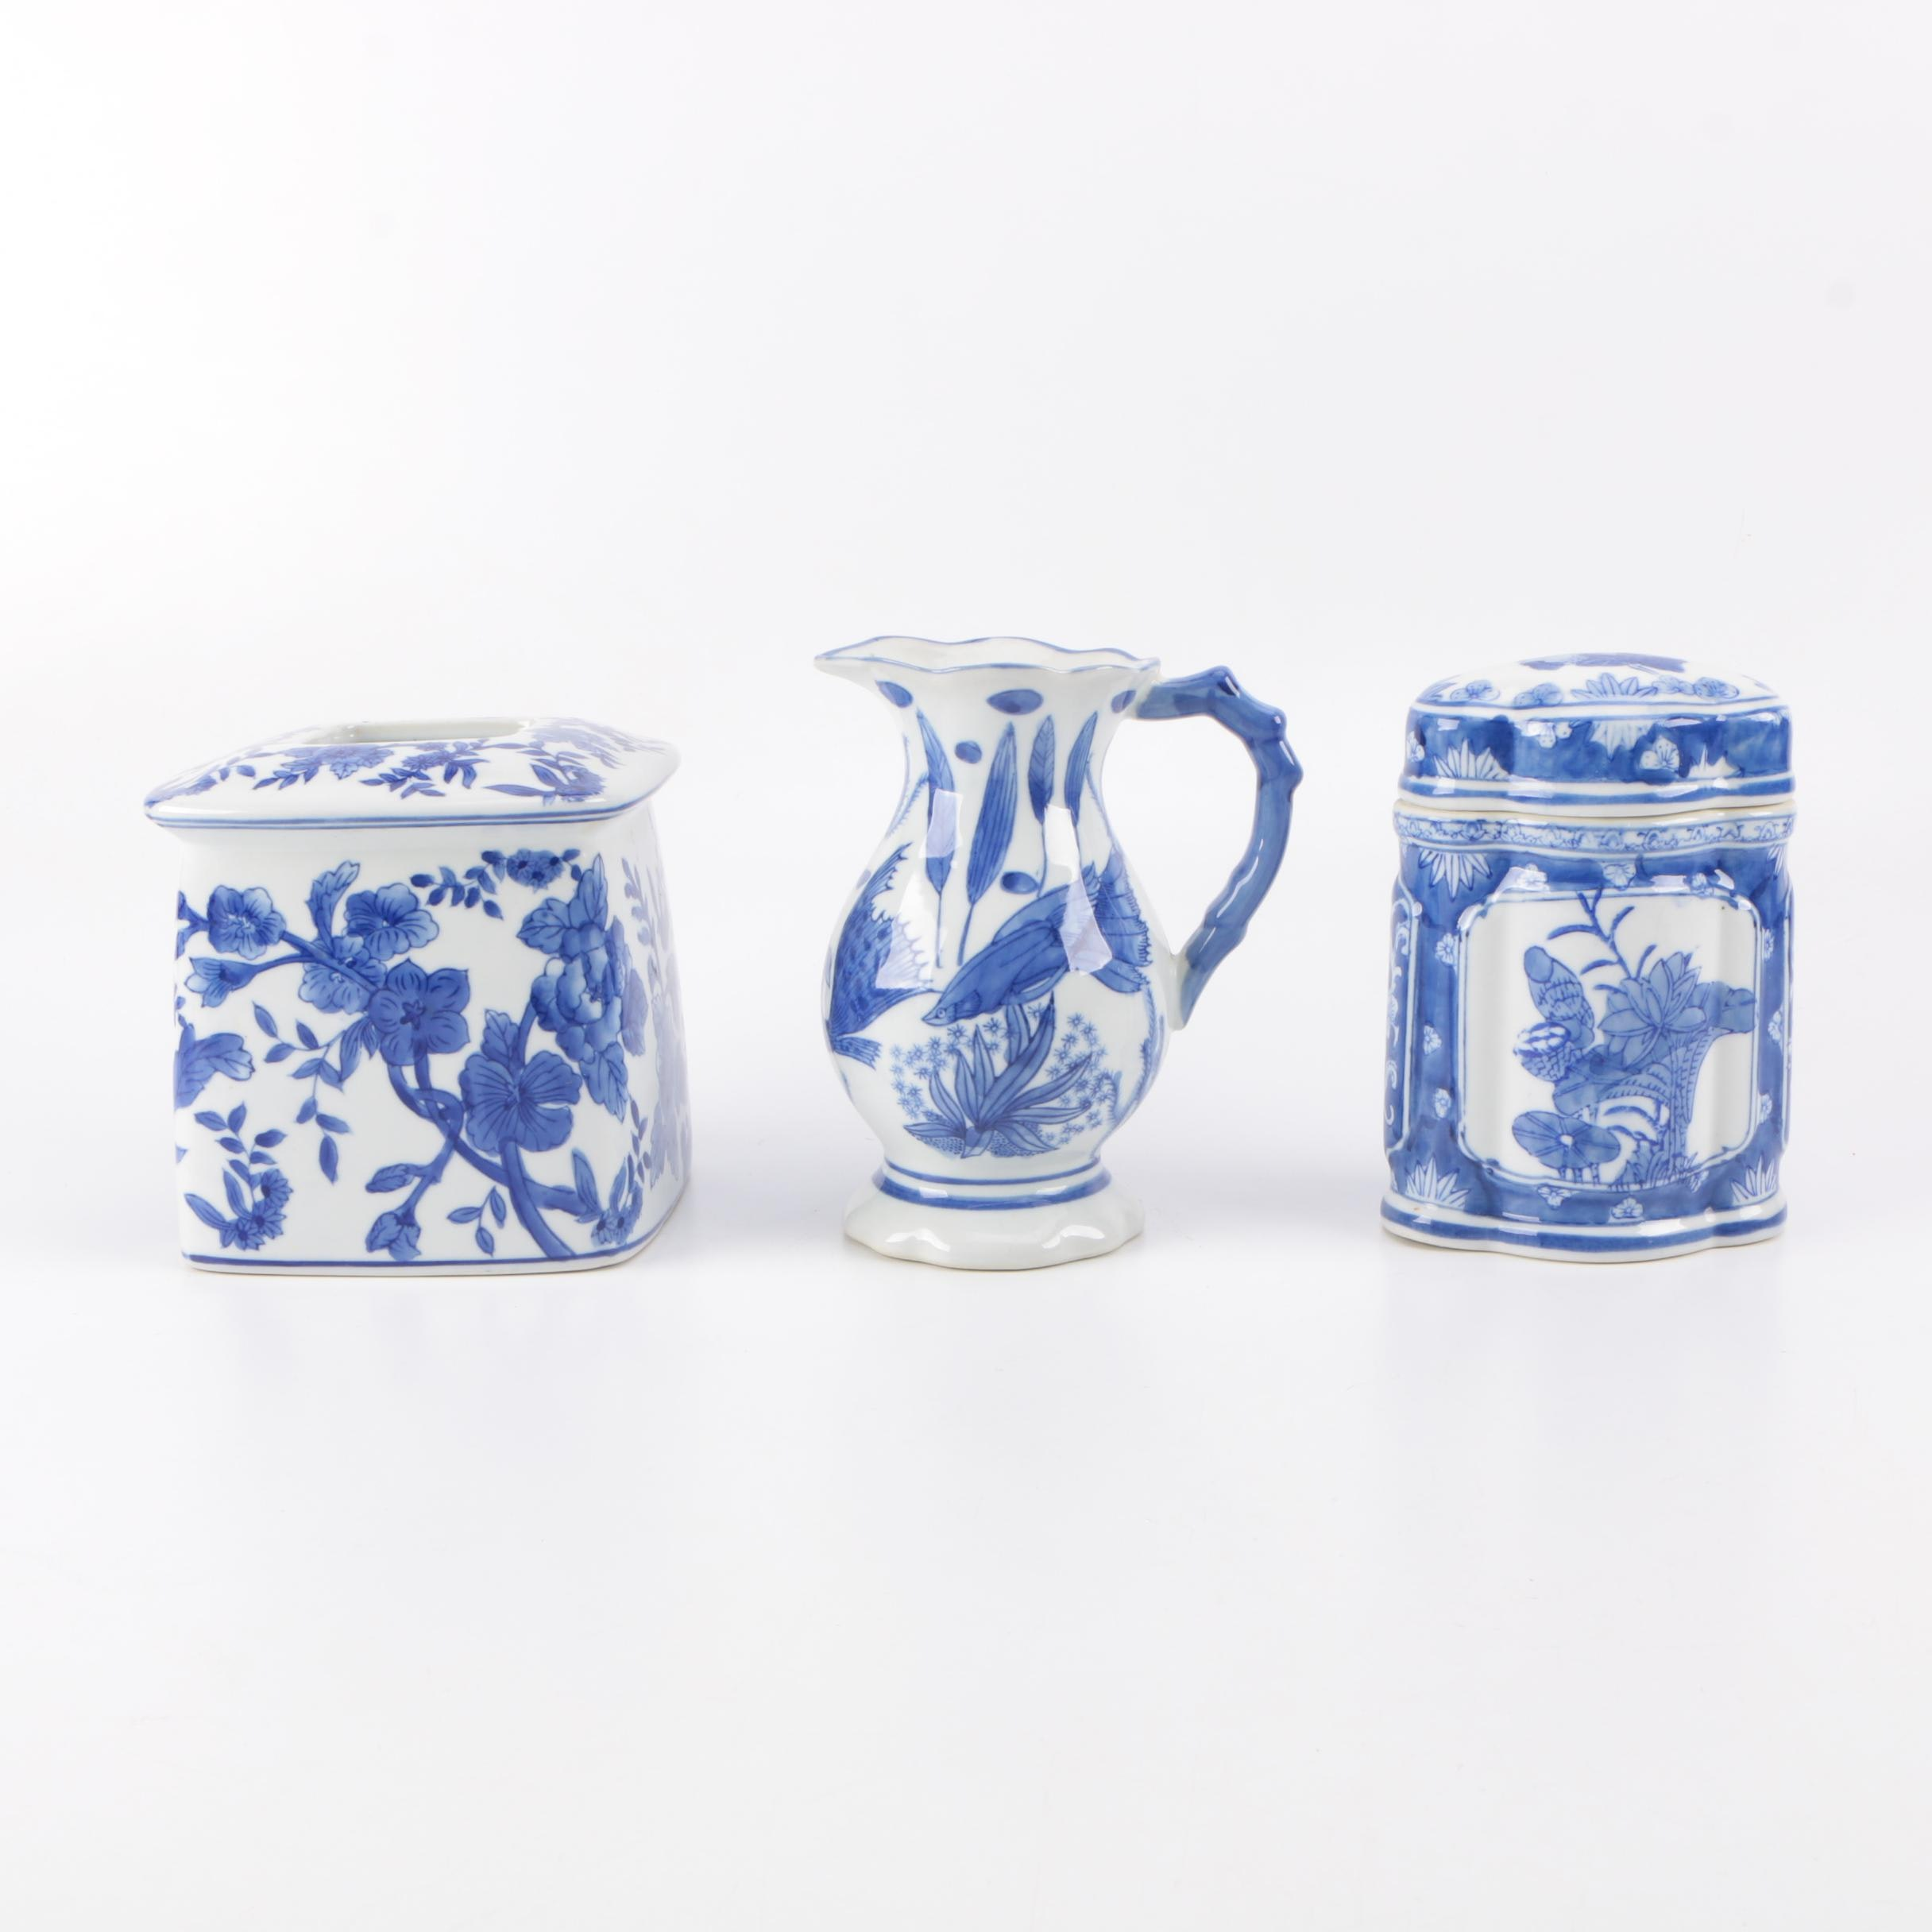 Cobalt on White Chinese Ceramic Home Decor